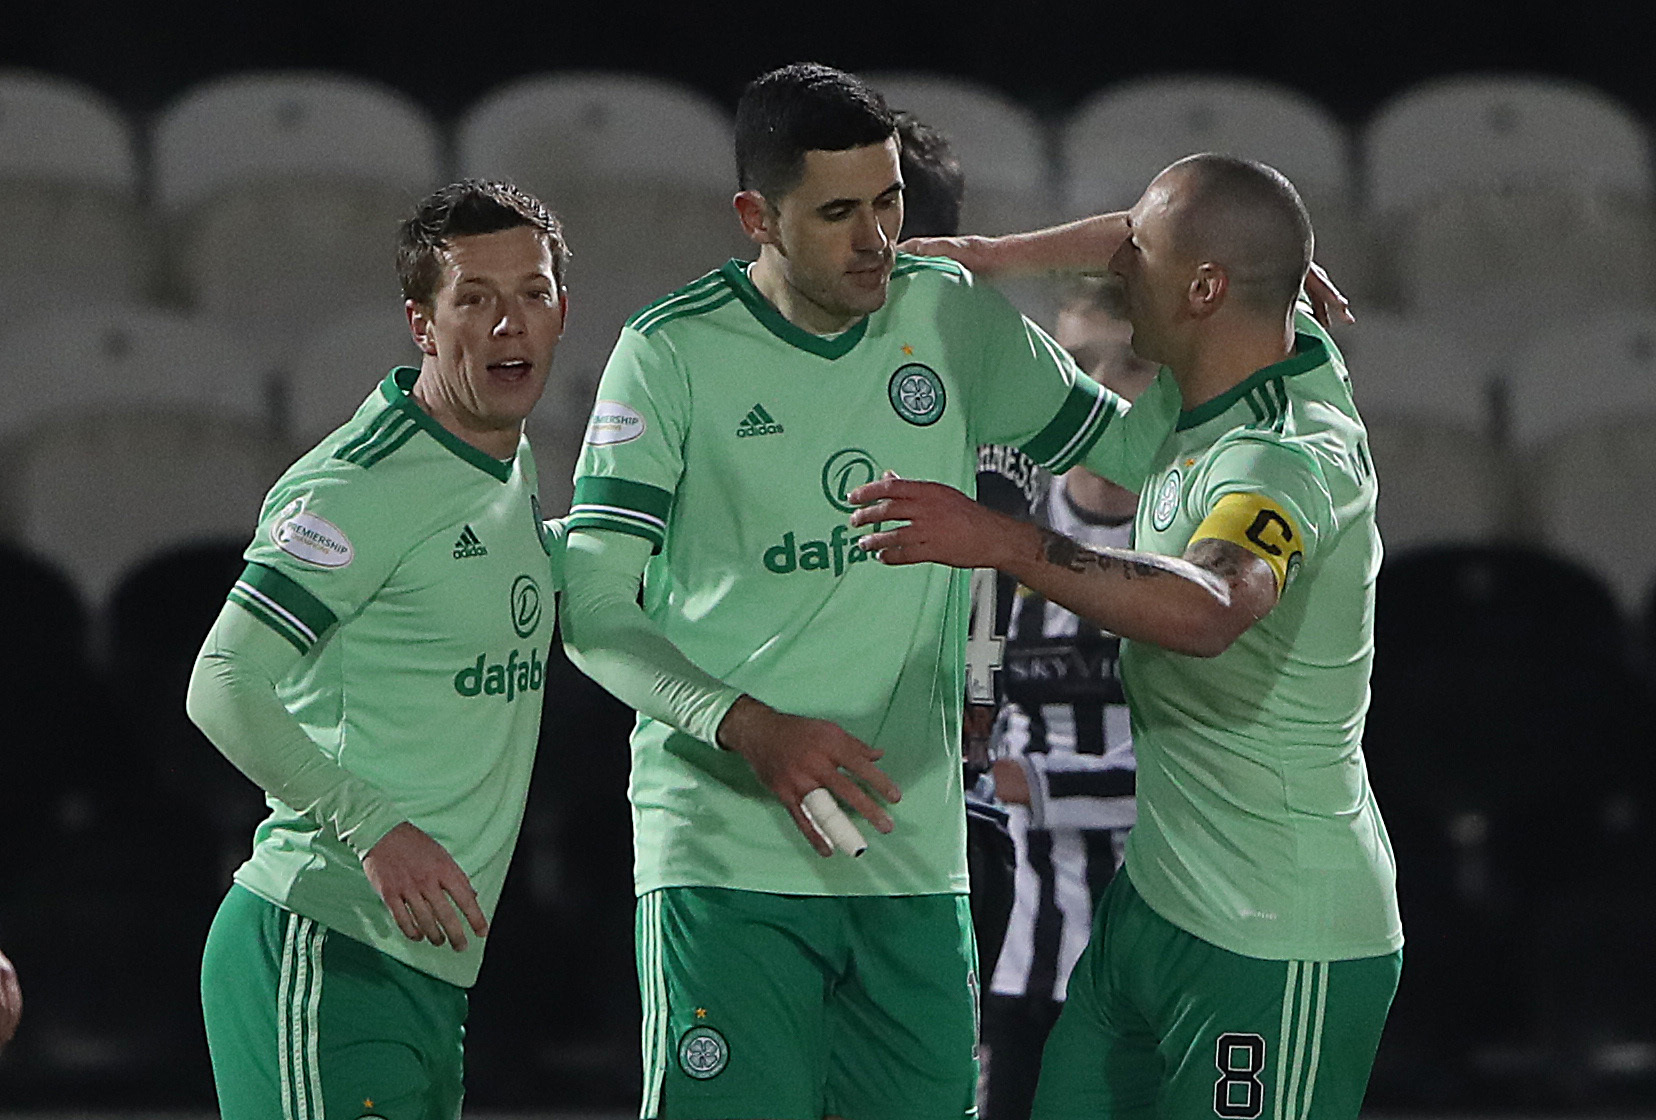 St Mirren 0 Celtic 4: How the Celtic players rated as they cruise to win in Paisley